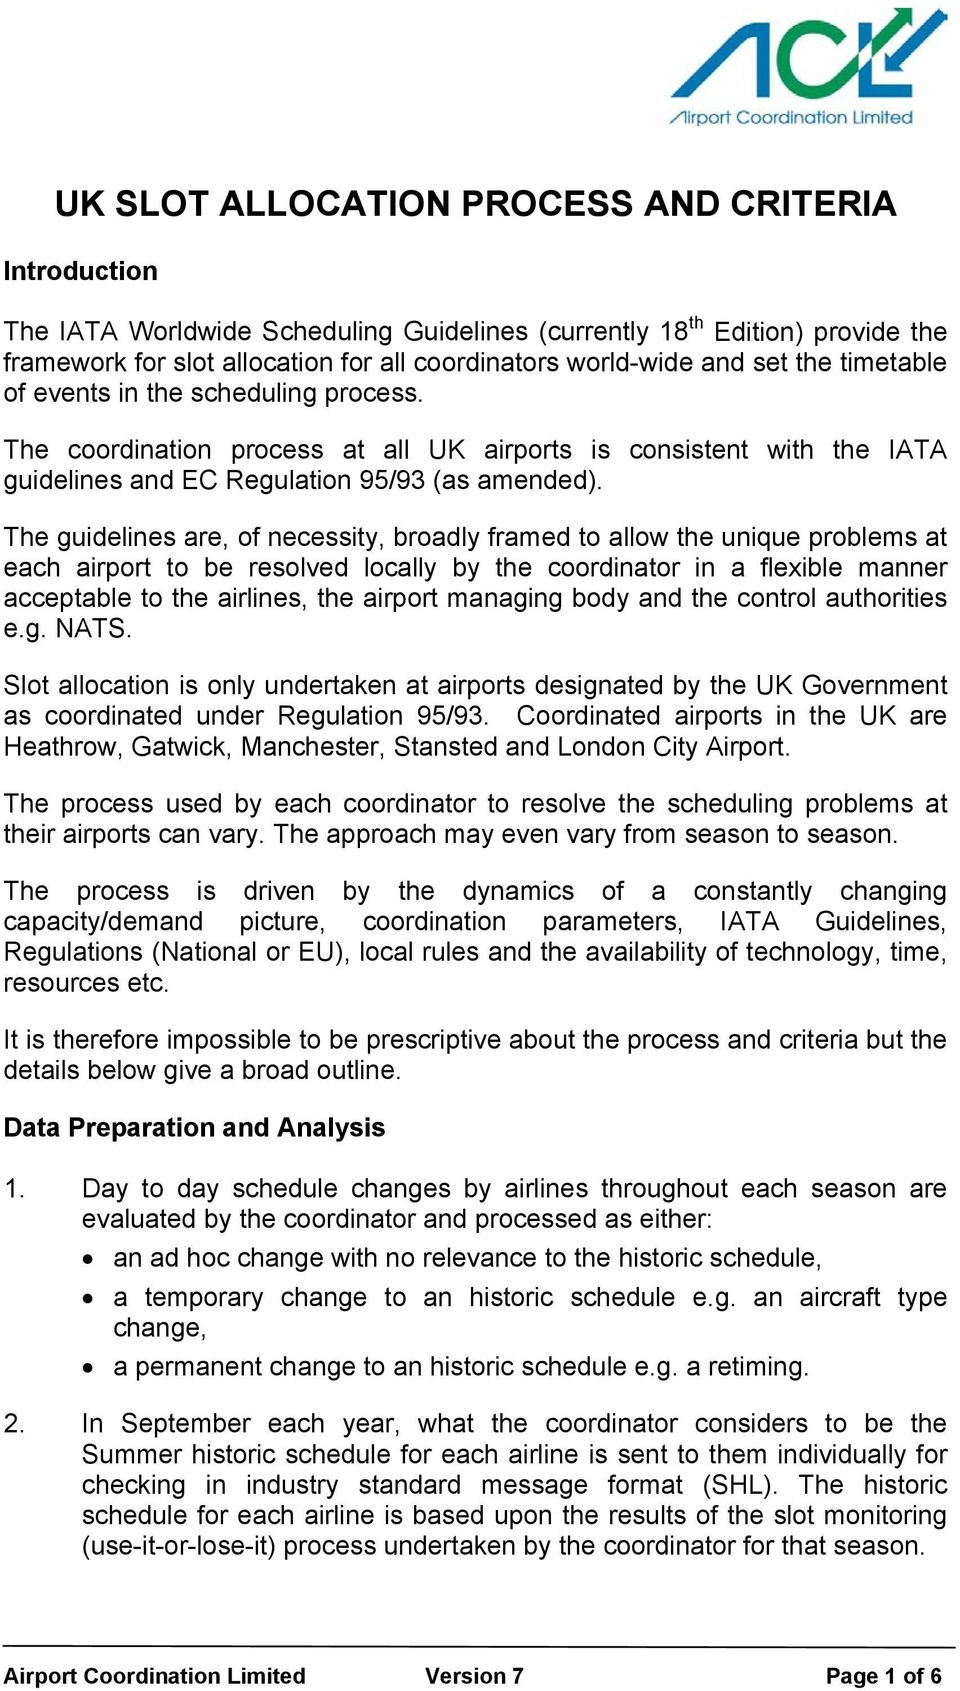 The guidelines are, of necessity, broadly framed to allow the unique problems at each airport to be resolved locally by the coordinator in a flexible manner acceptable to the airlines, the airport